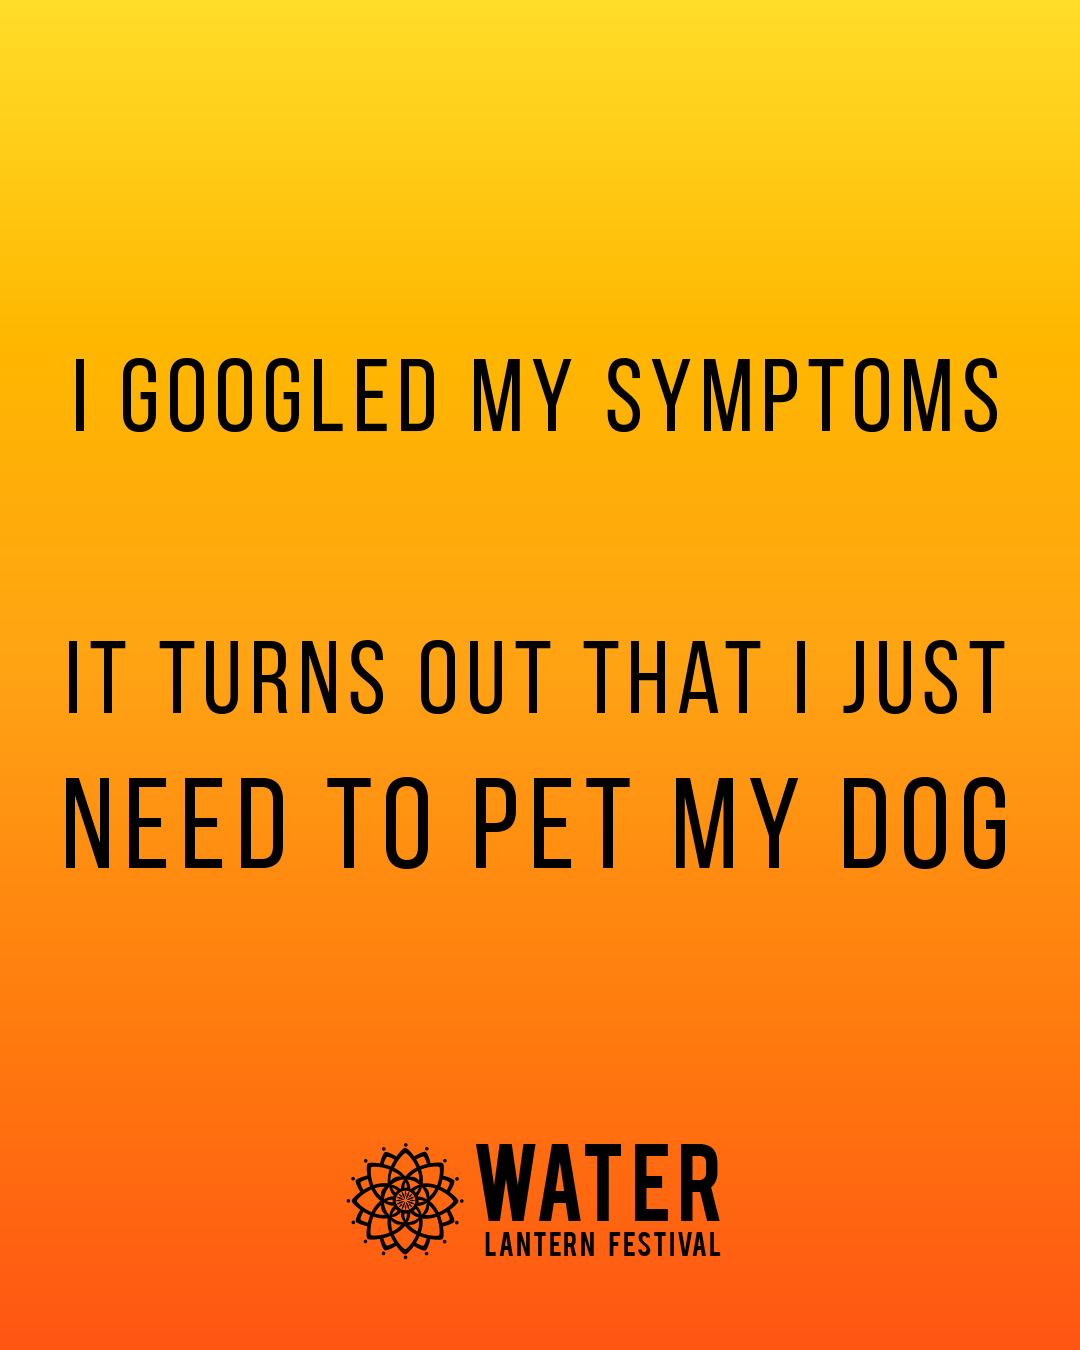 Who else is a dog lover? To learn more about the Water